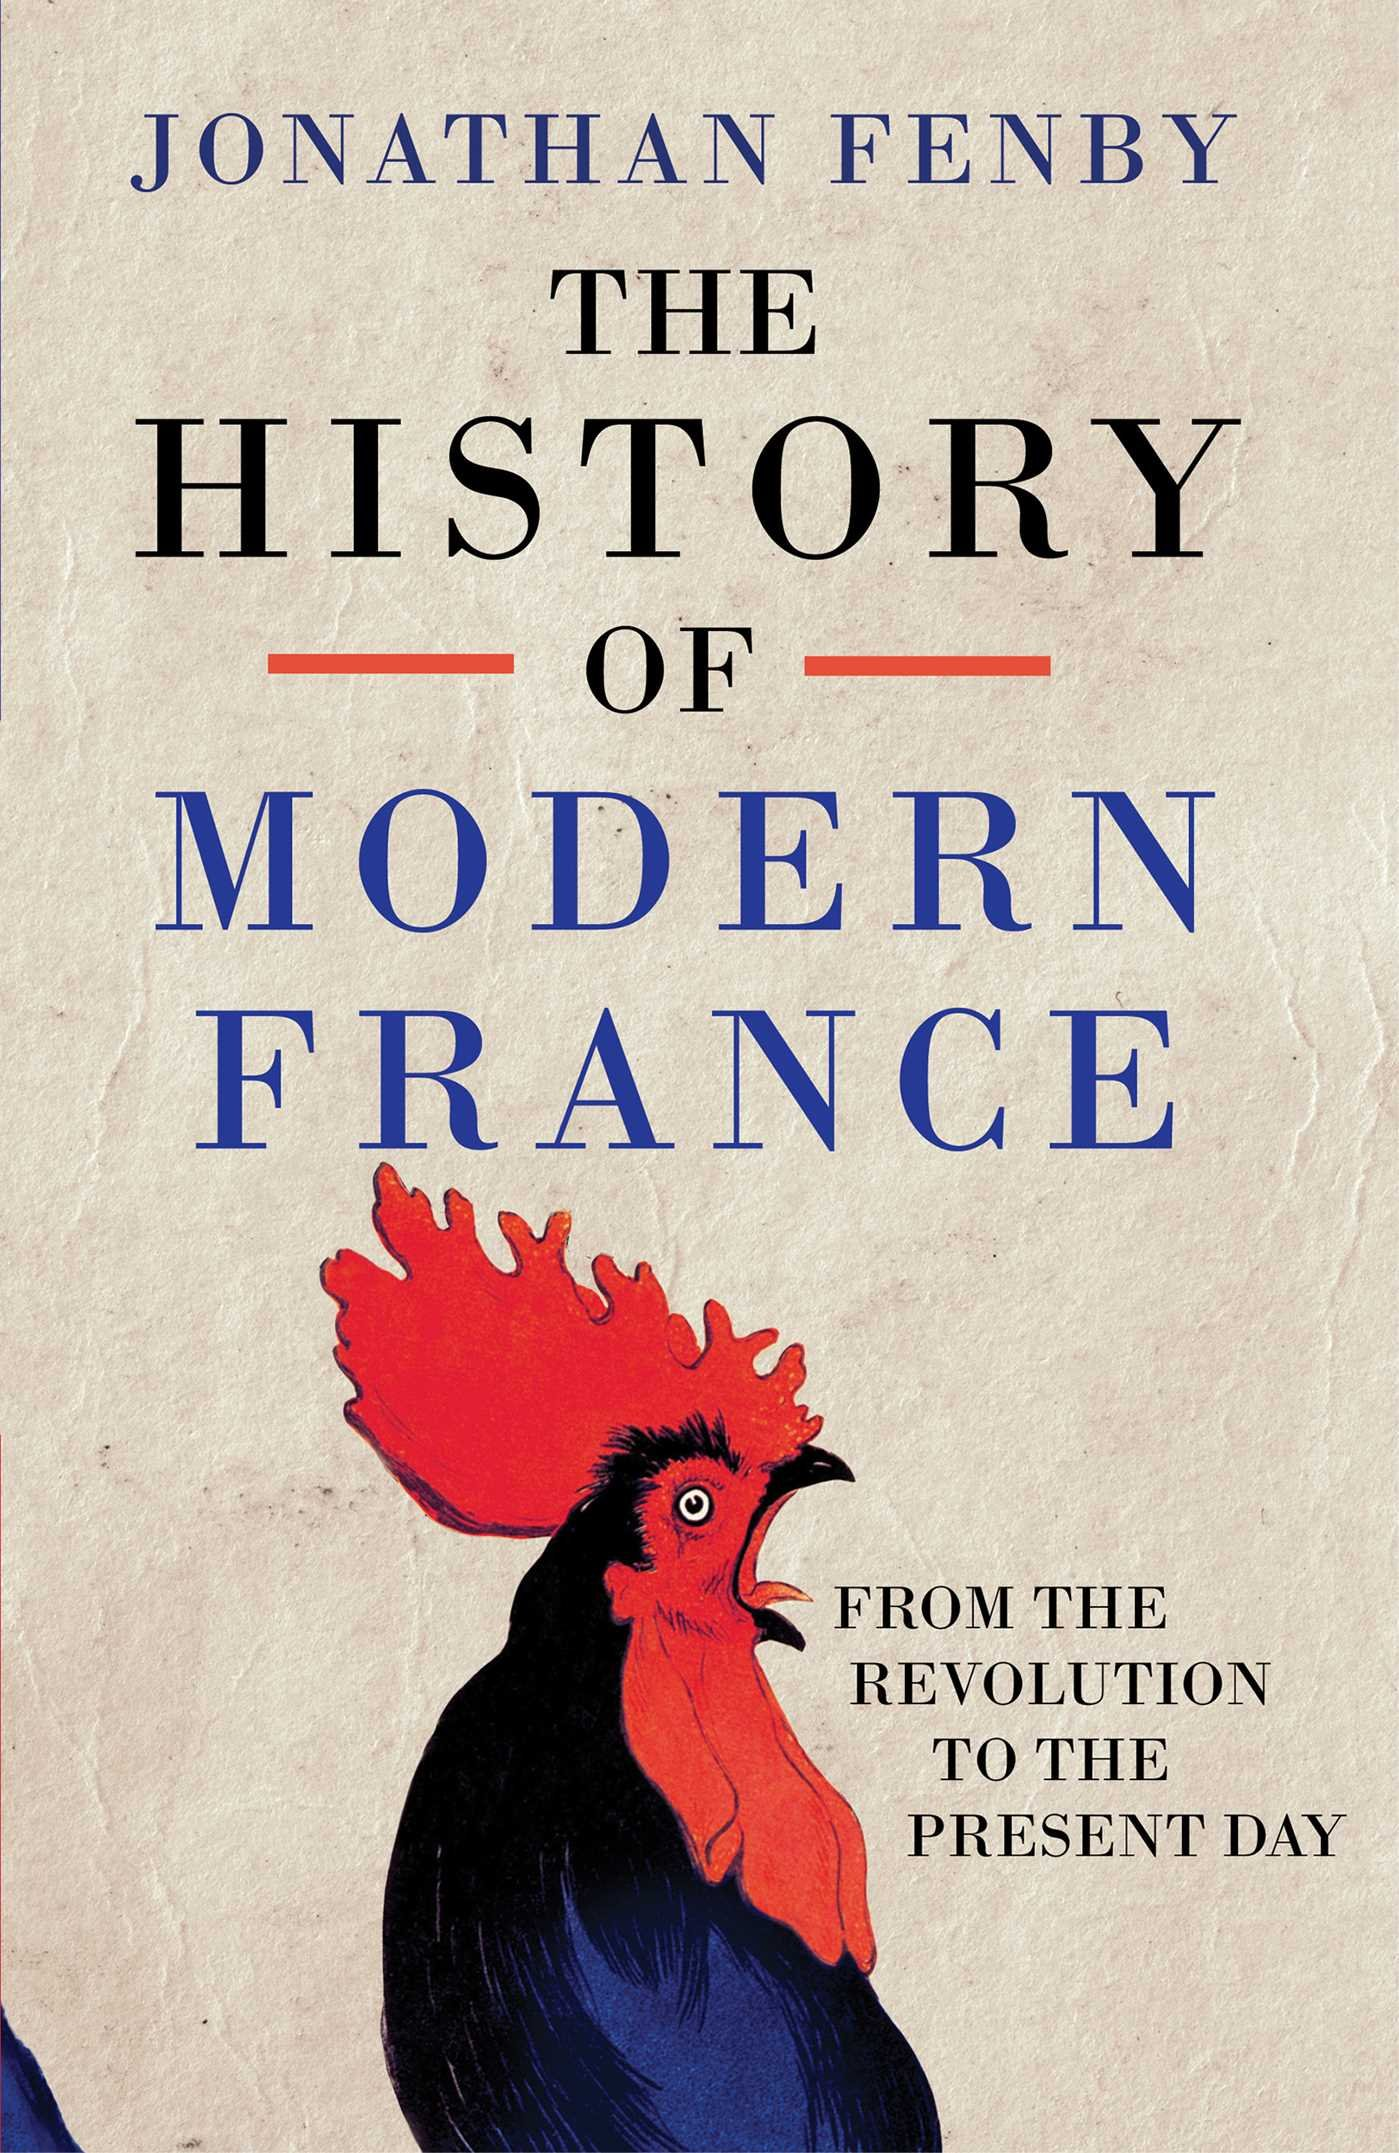 the history of modern france from the revolution to the war on